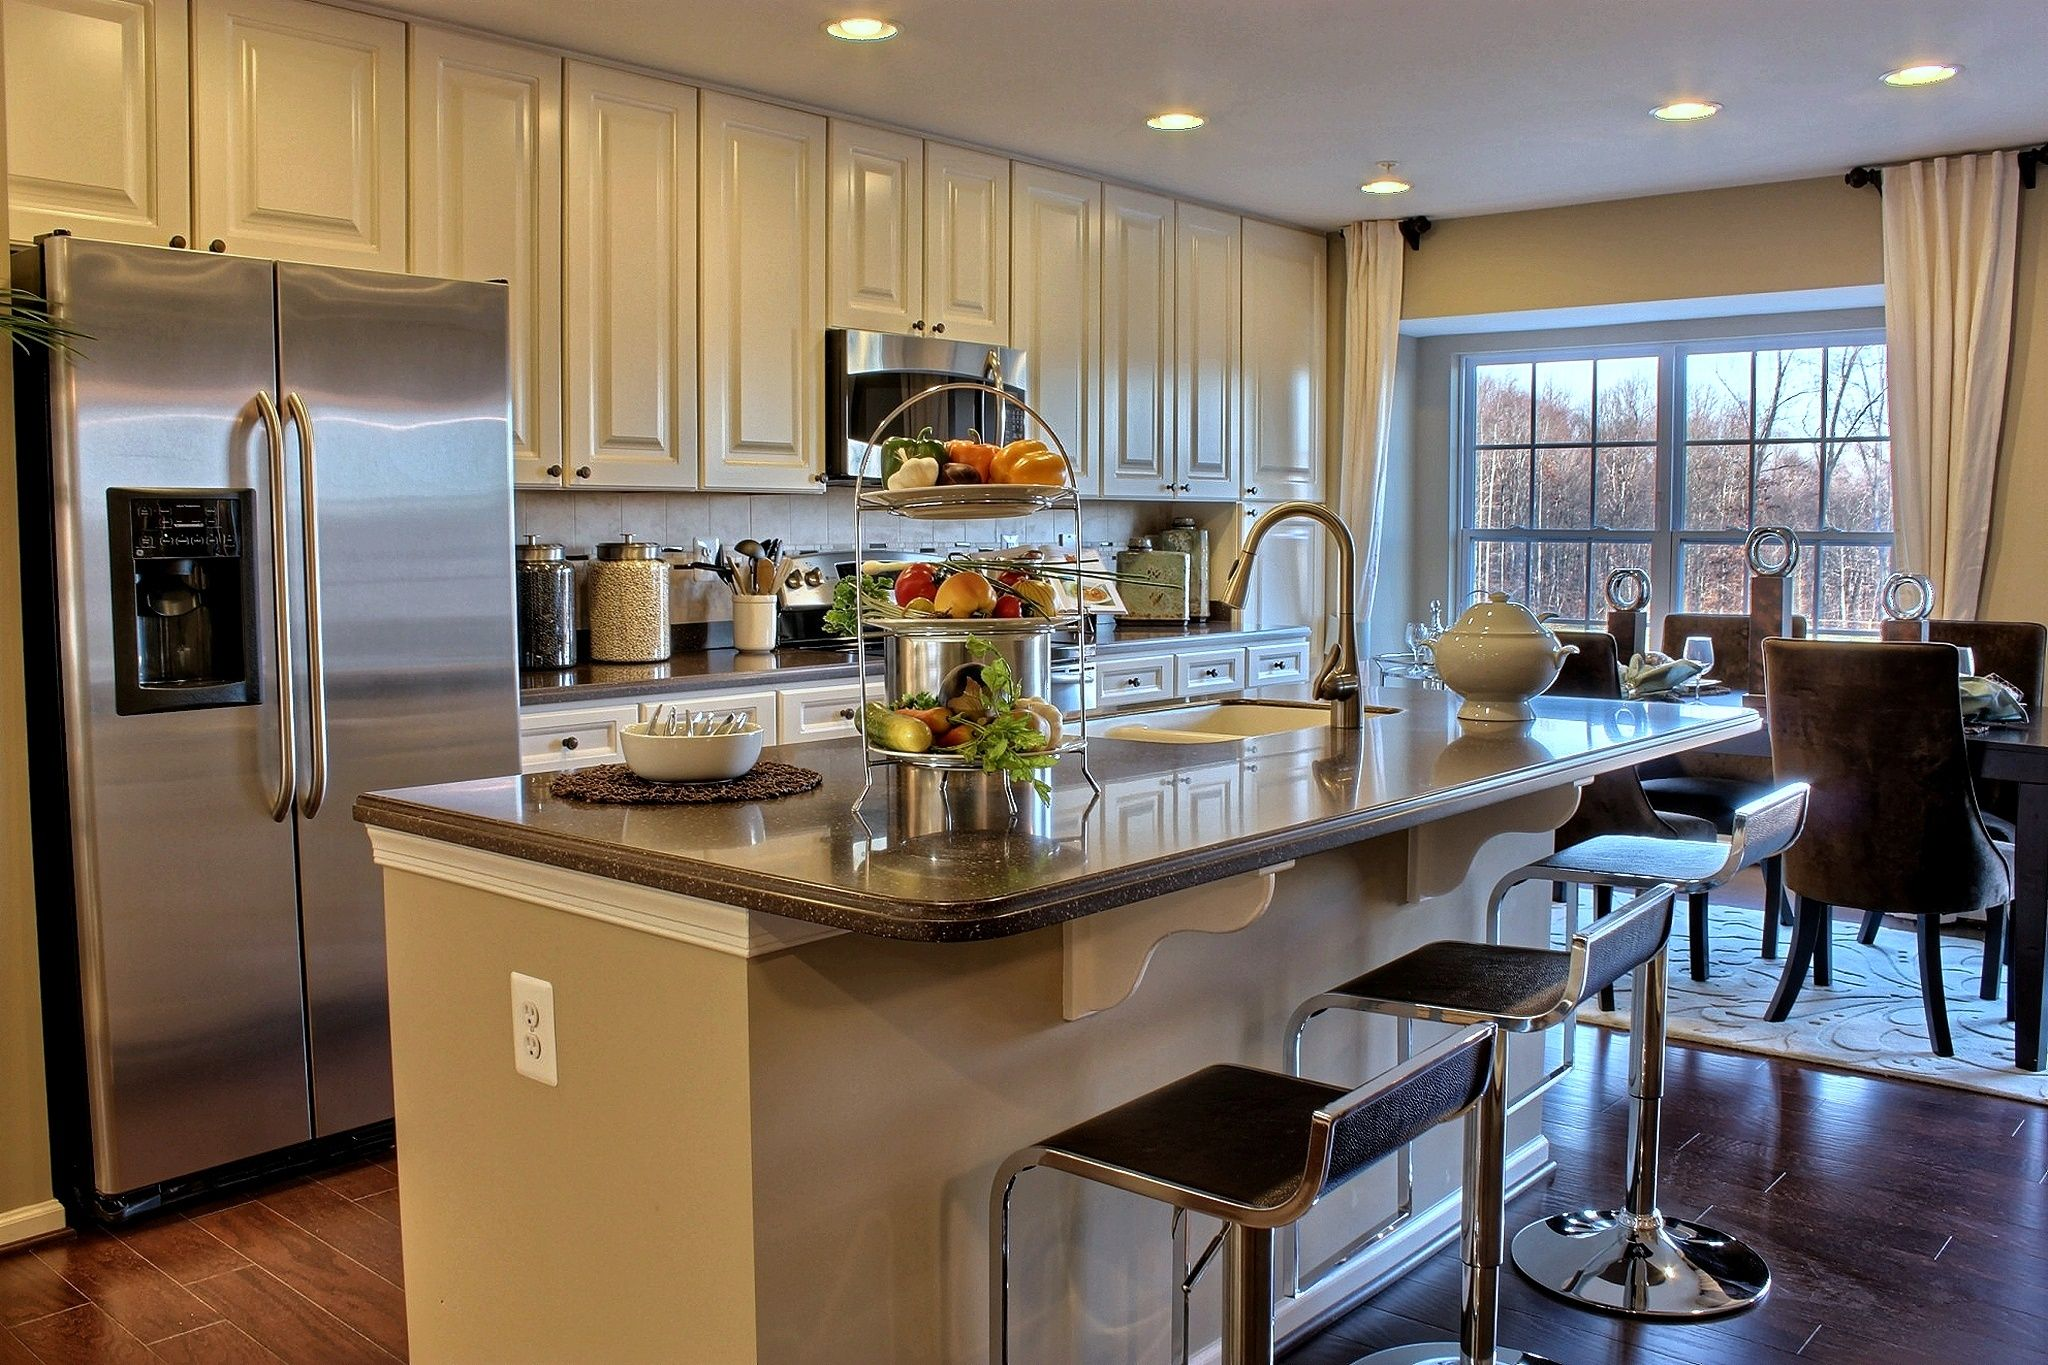 Prime A Chic And Calming Kitchen In The Garrett Model By Ryland Interior Design Ideas Clesiryabchikinfo